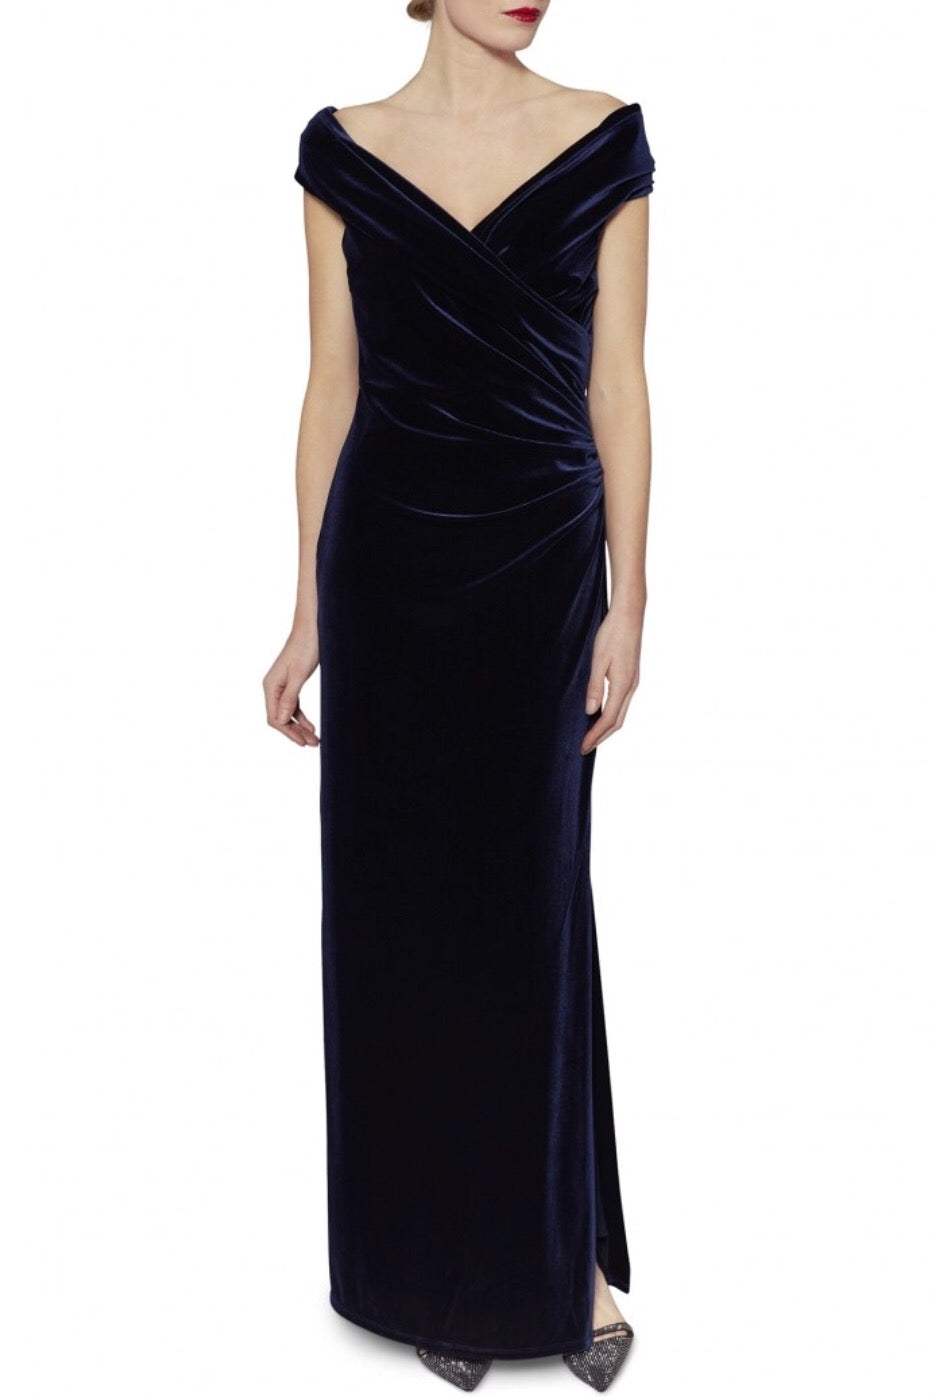 Cassandra Velvet Maxi Dress V-neck